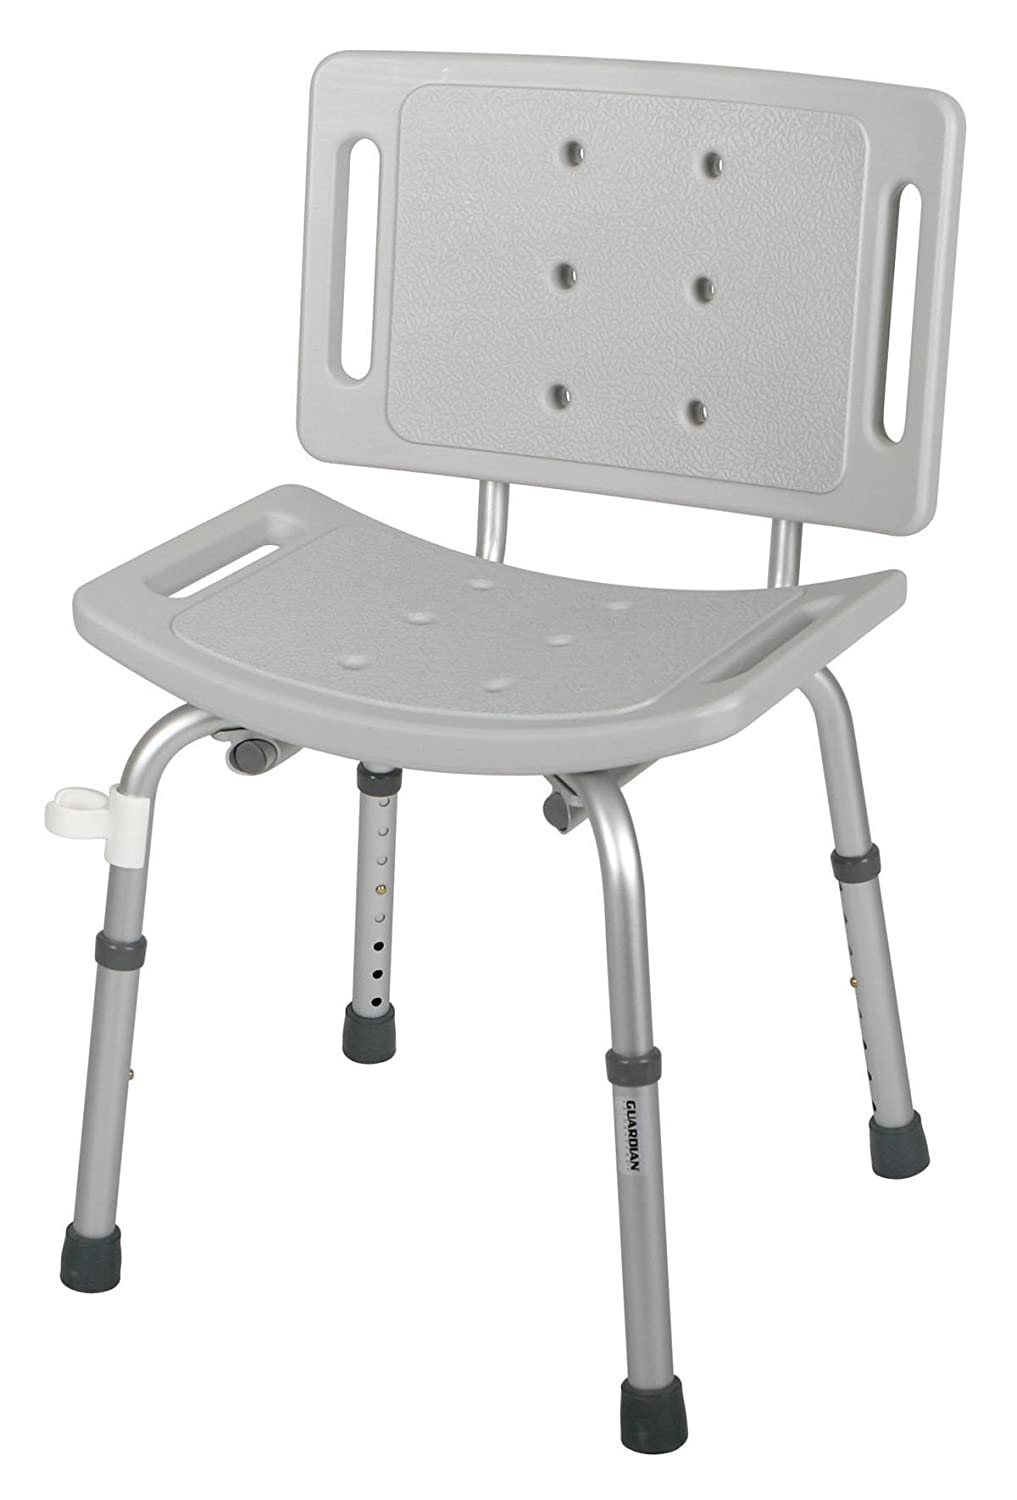 Amazon.com: Guardian Shower Chair with Back: Health & Personal Care